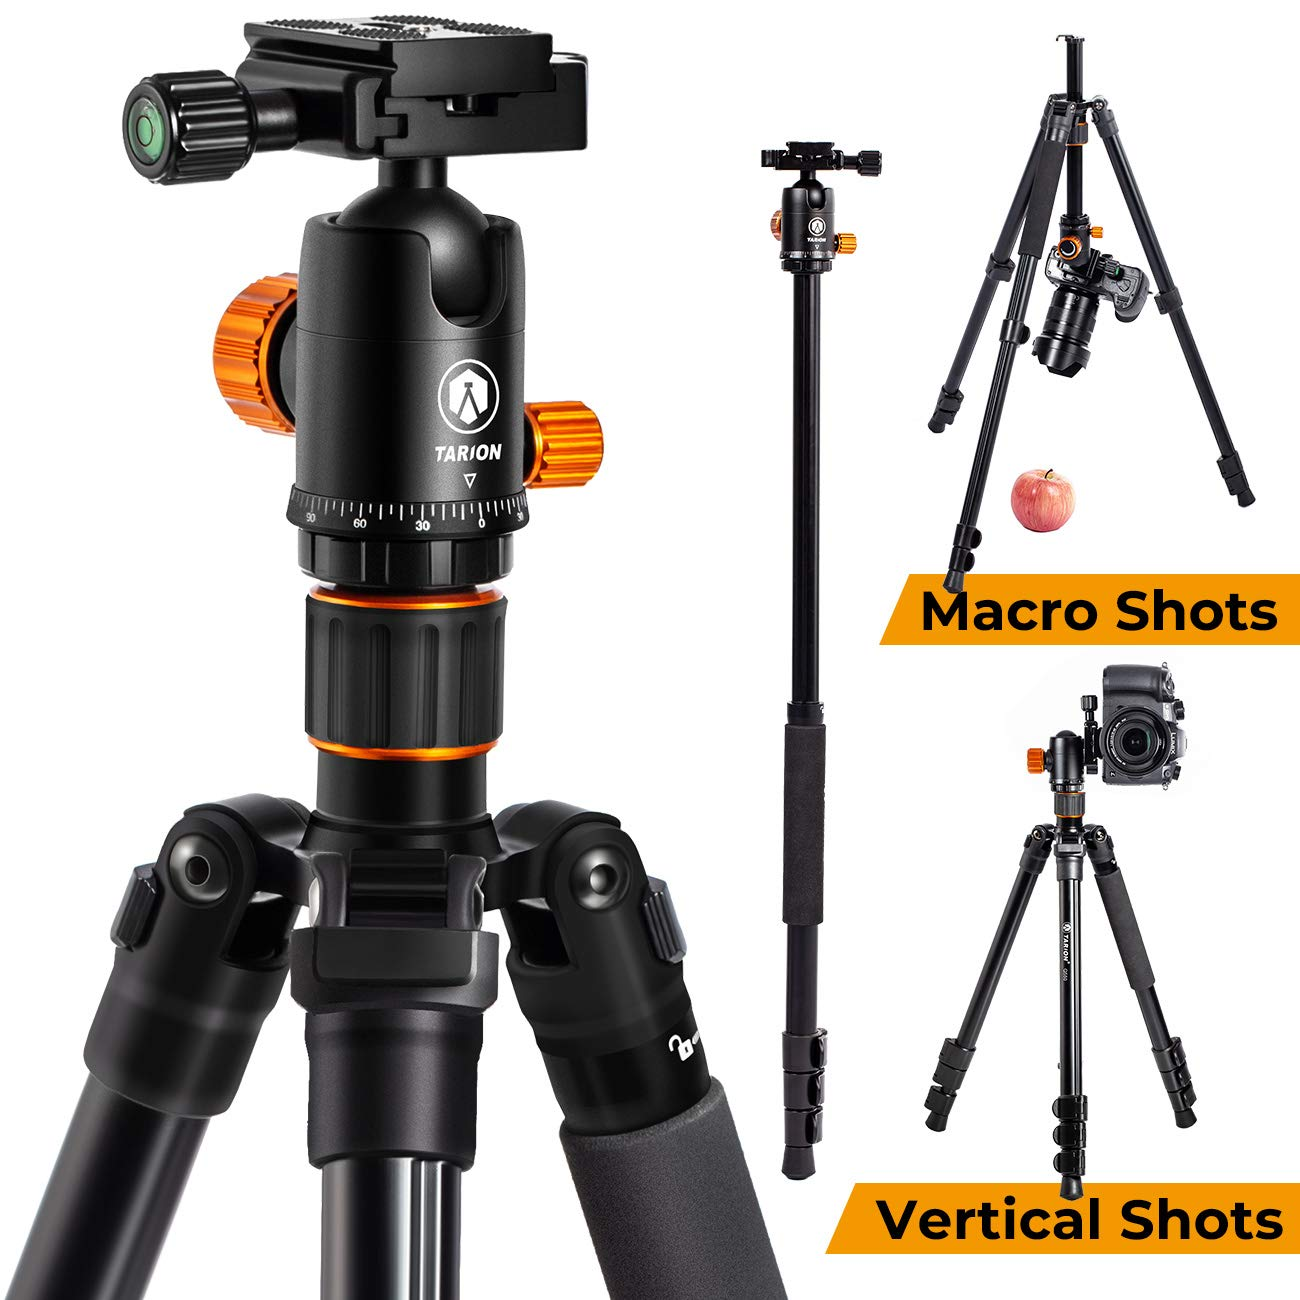 TARION Camera Tripod Monopod 61in with Panorama Ball Head Aluminium Travel Tripod for DSLR Mirrorless Cameras Support Macro Shots Counter Weight 13lb Payload Lightweight 16.9'' Foldable Size by TARION